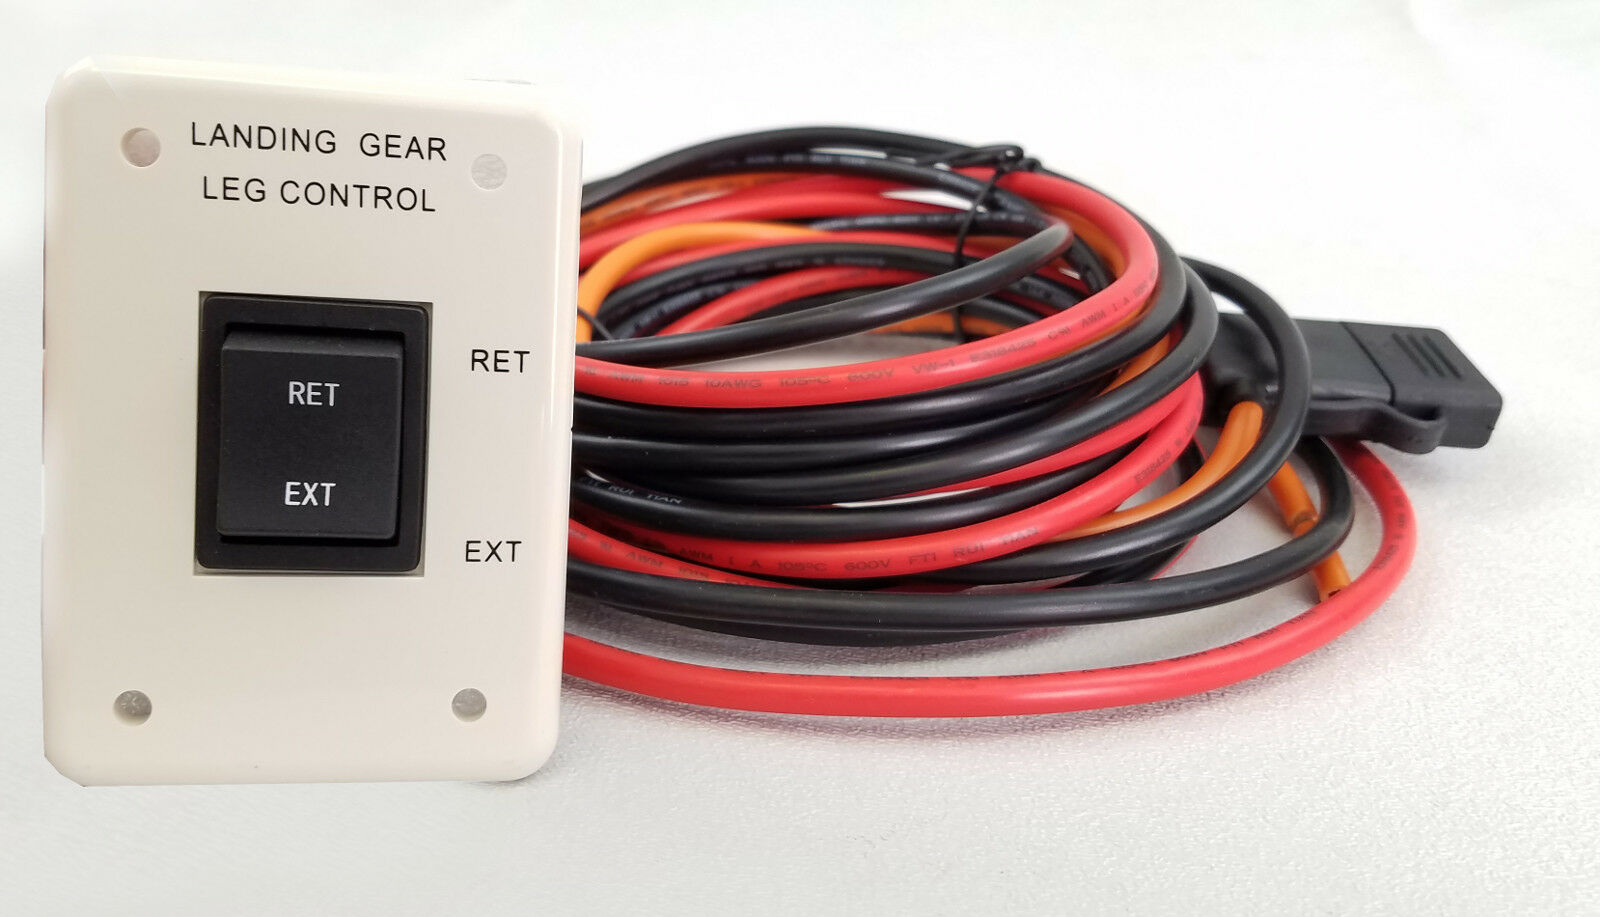 new rv wiring harness w switch 5th wheel landing gear motor system rh picclick com 5th wheel wiring harness diagram gm 5th wheel wiring harness